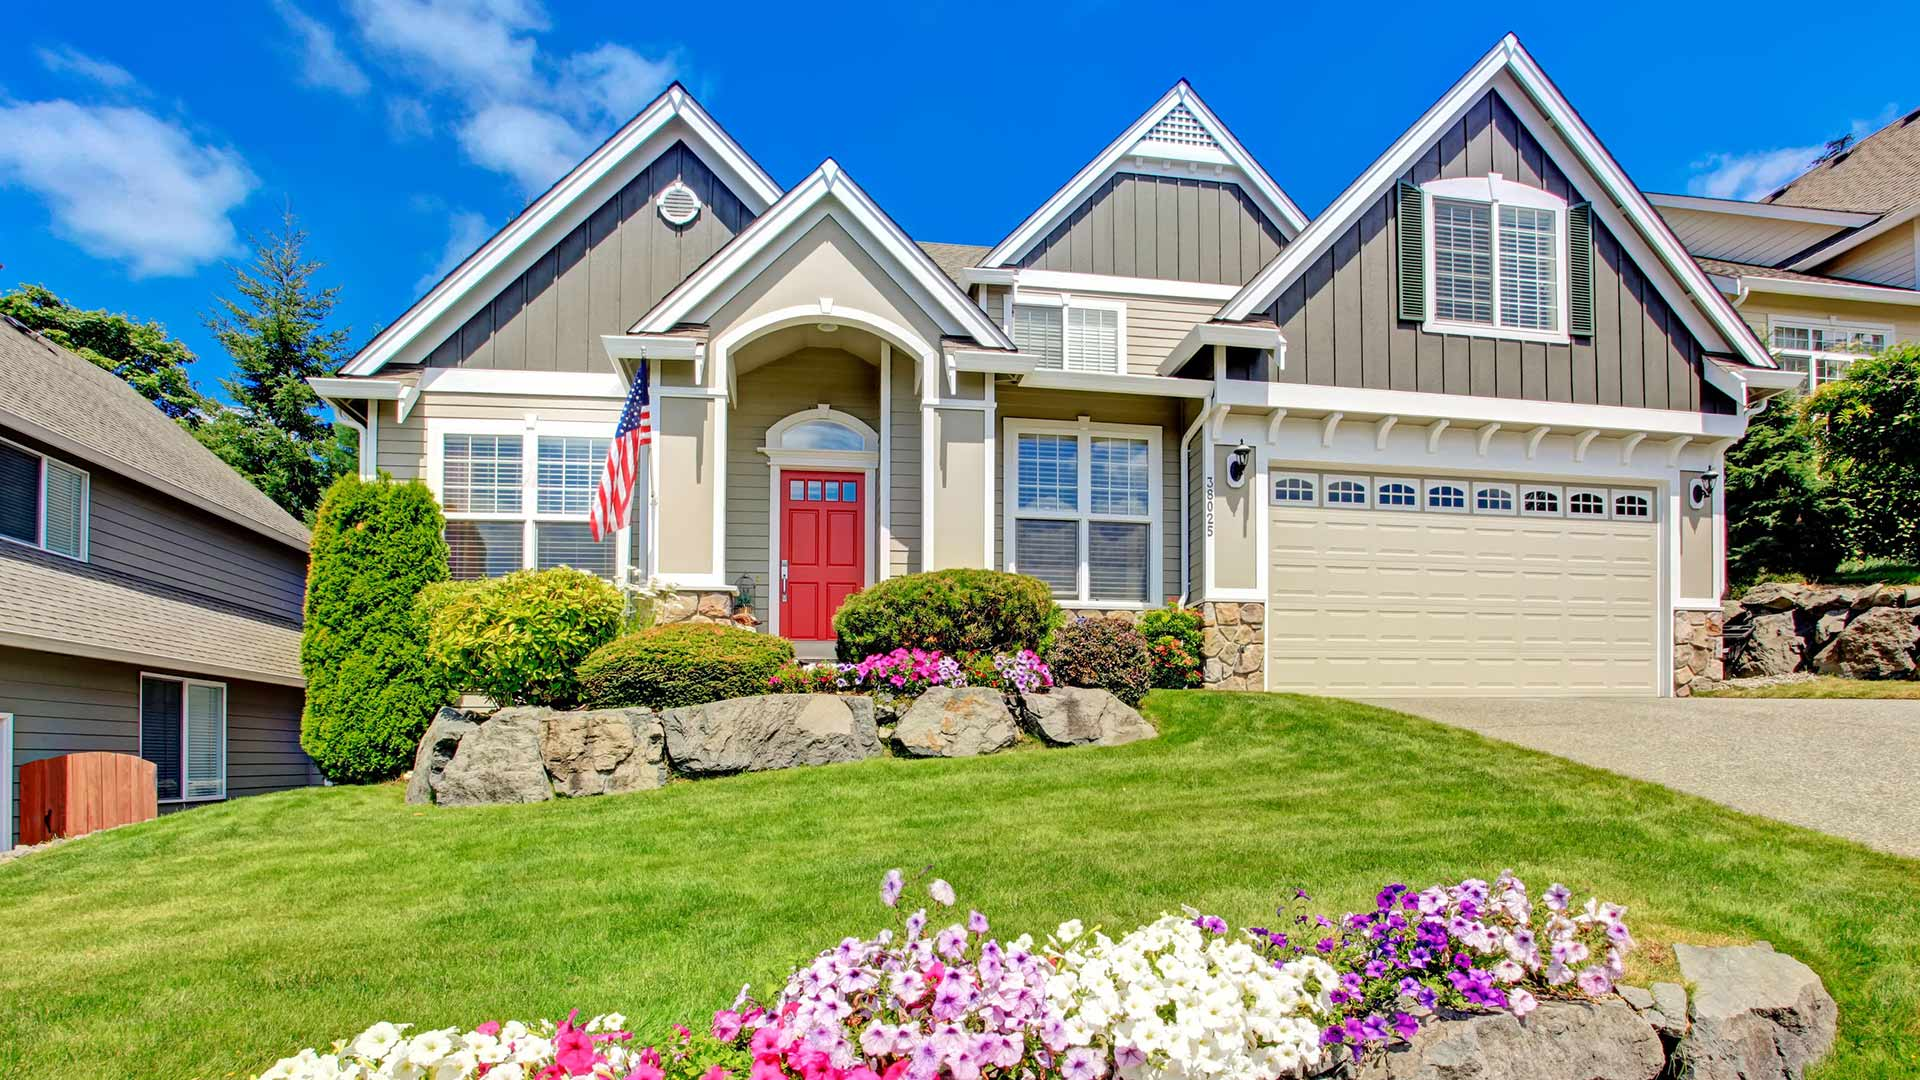 Learn the Top 4 Benefits of Exterior Home Improvement